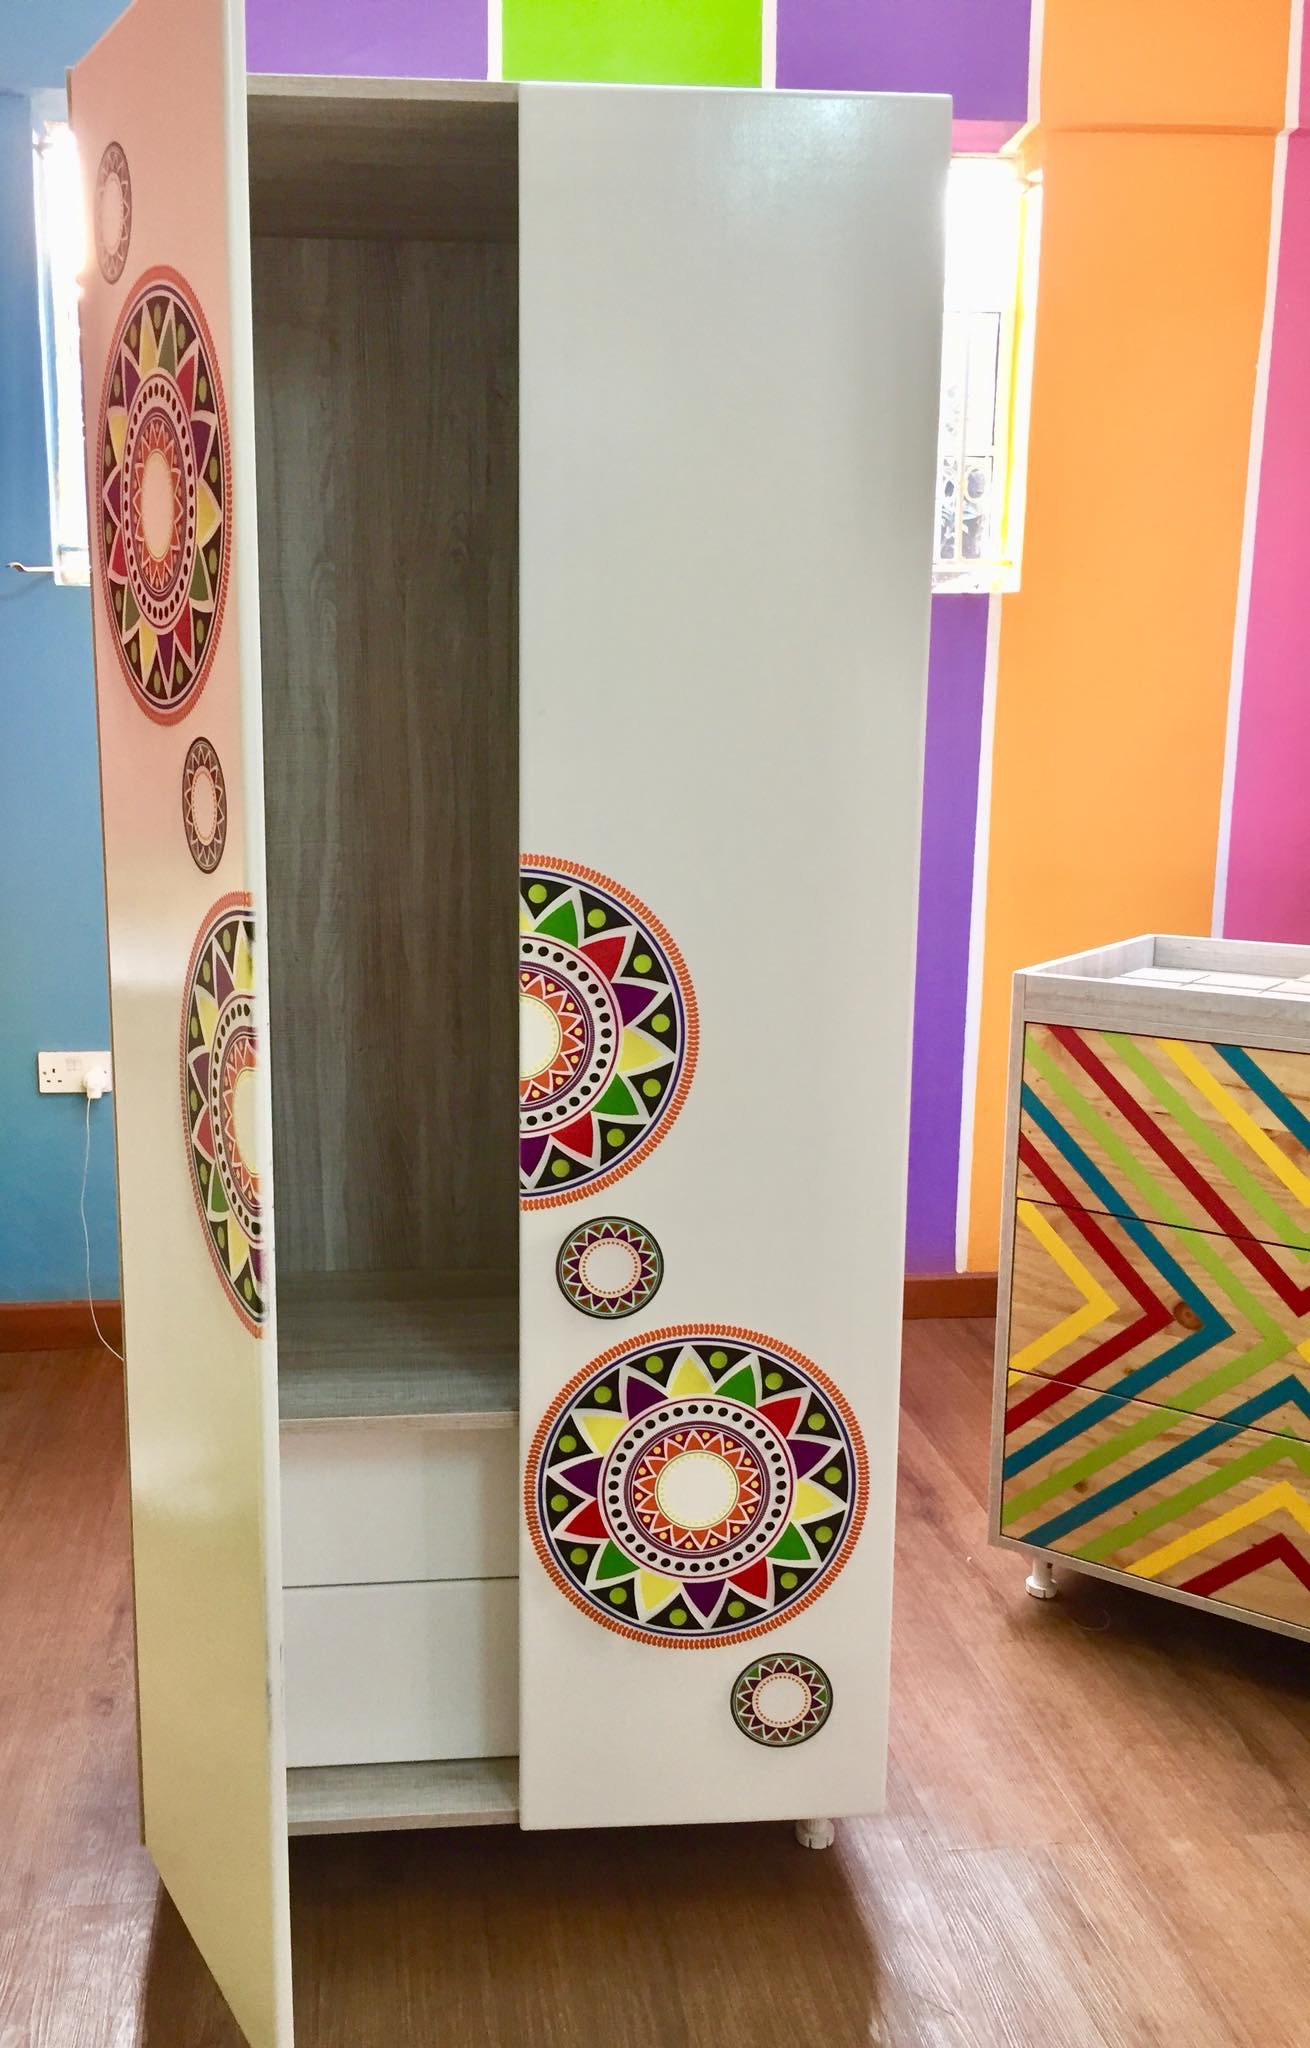 Kenya furniture maker FunKidz